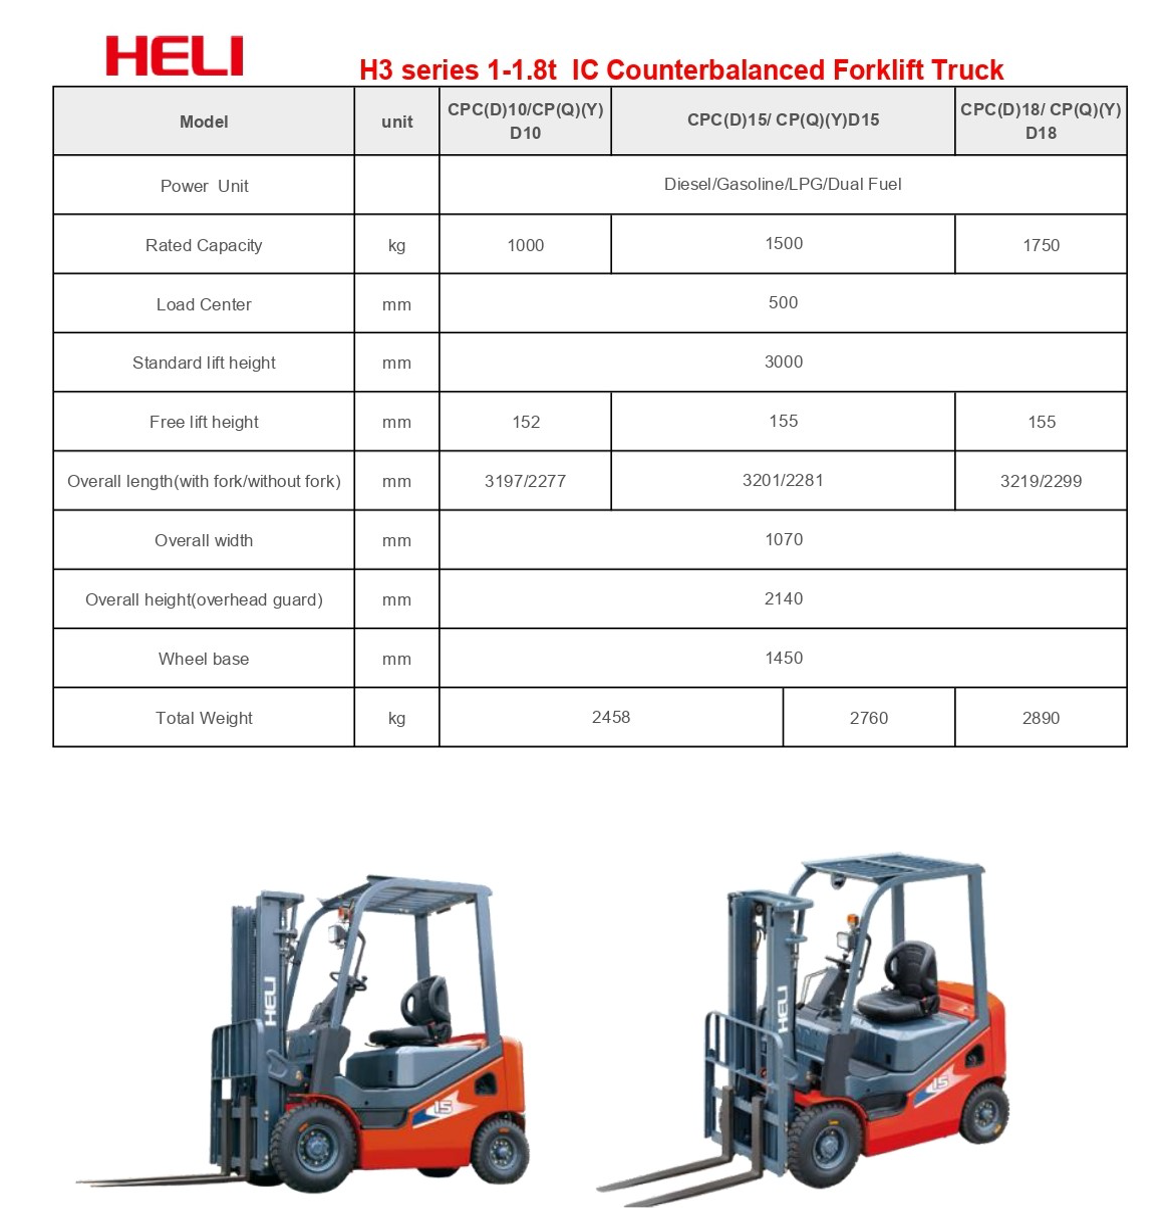 heli-forklift-h3-series-1-1.8-t-IC-counterbalanced-forklift-truck